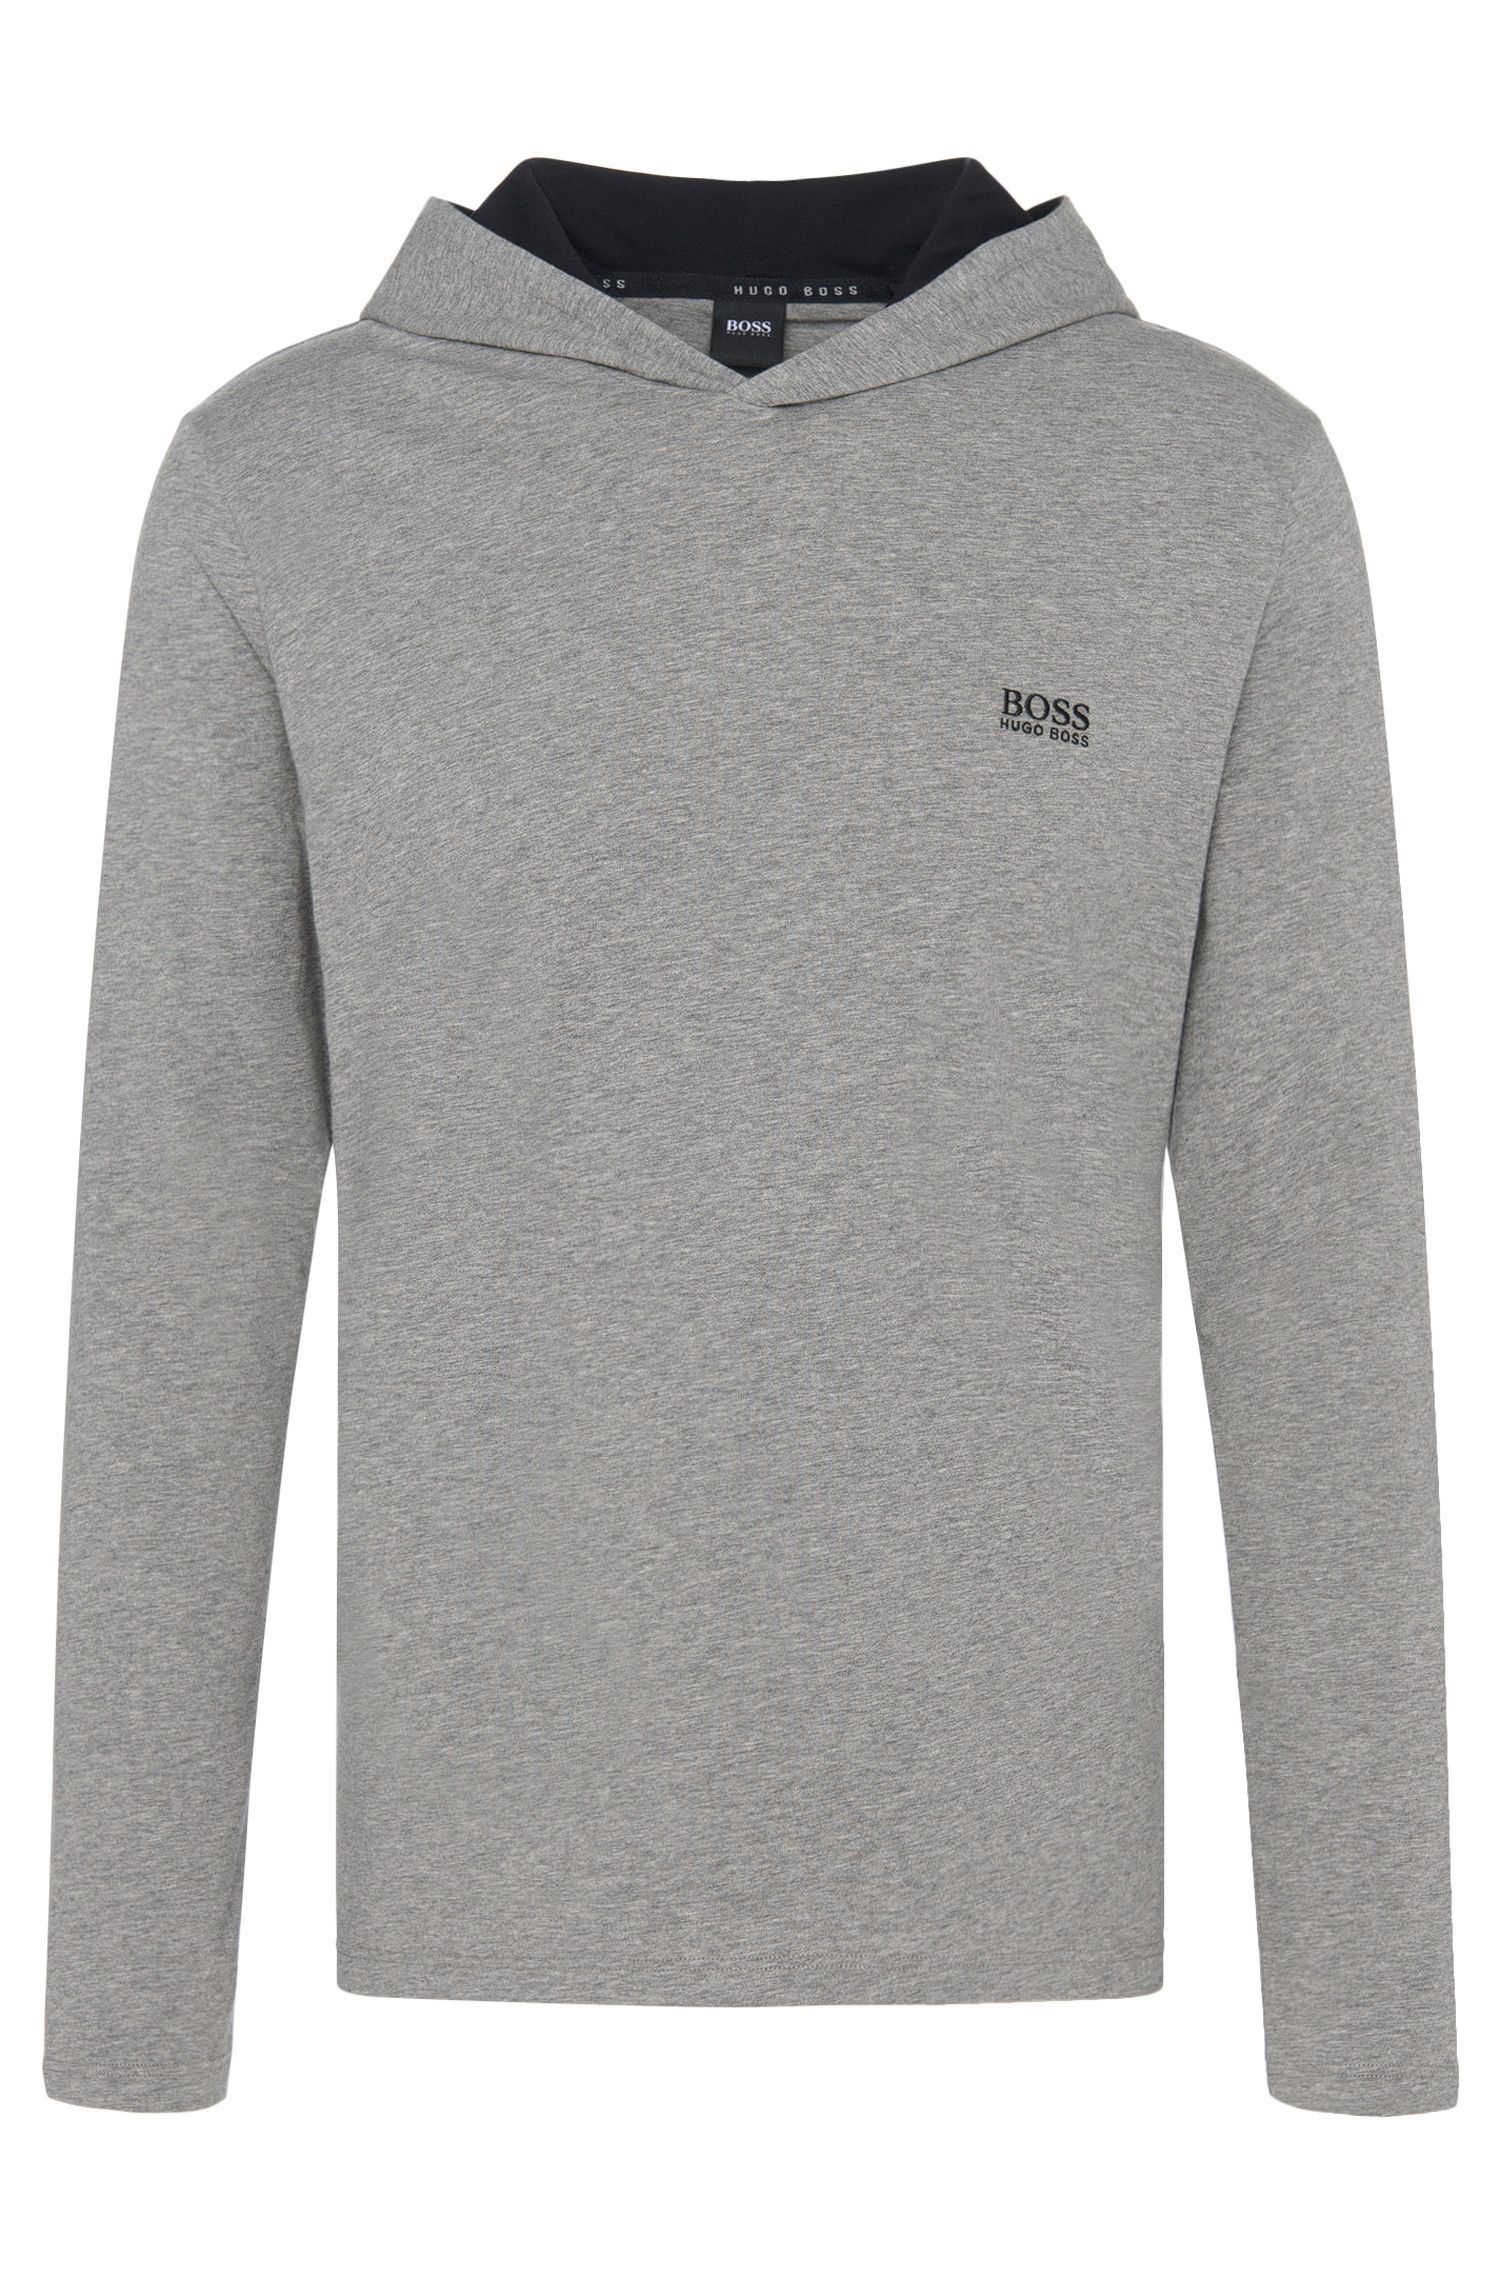 Kapuzen-Longsleeve aus Stretch-Baumwolle: 'LS-Shirt Hooded'